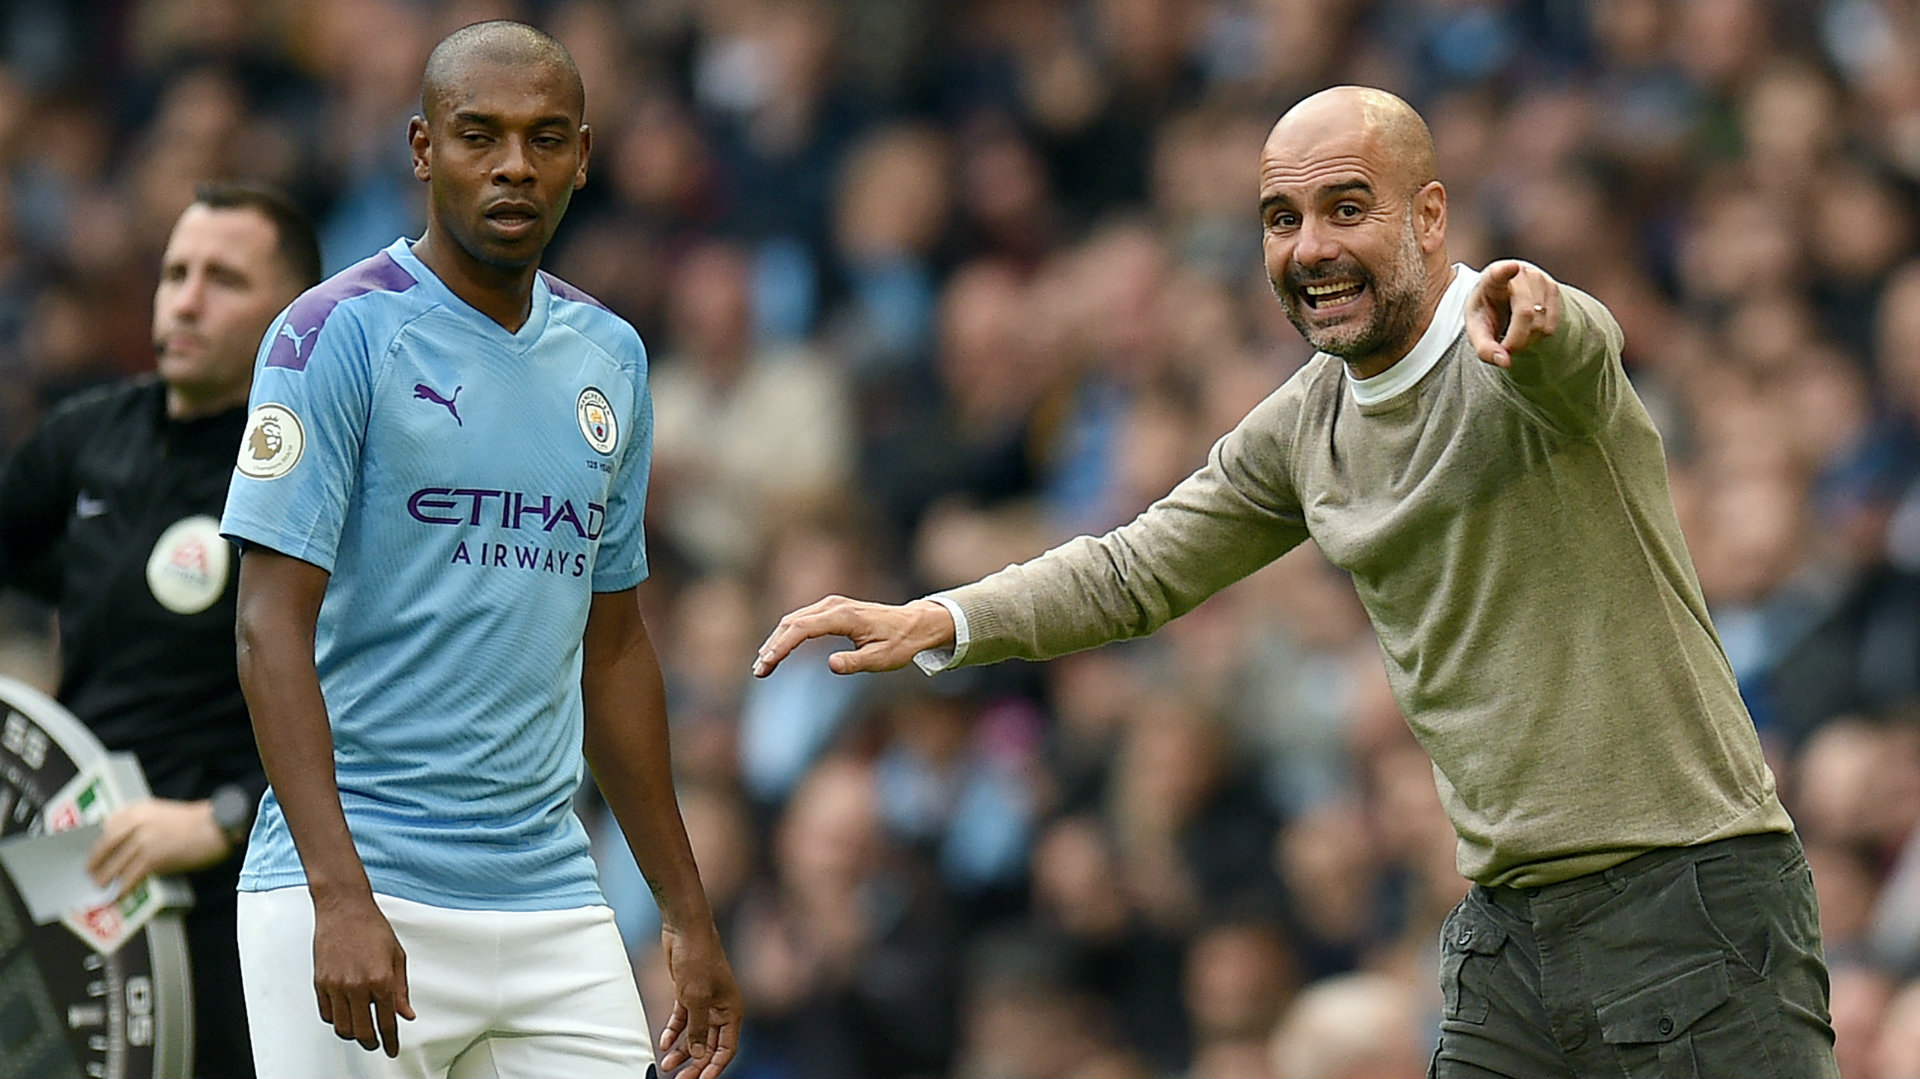 'He looks at the smallest details' - Fernandinho gives insight into Guardiola's meticulous planning